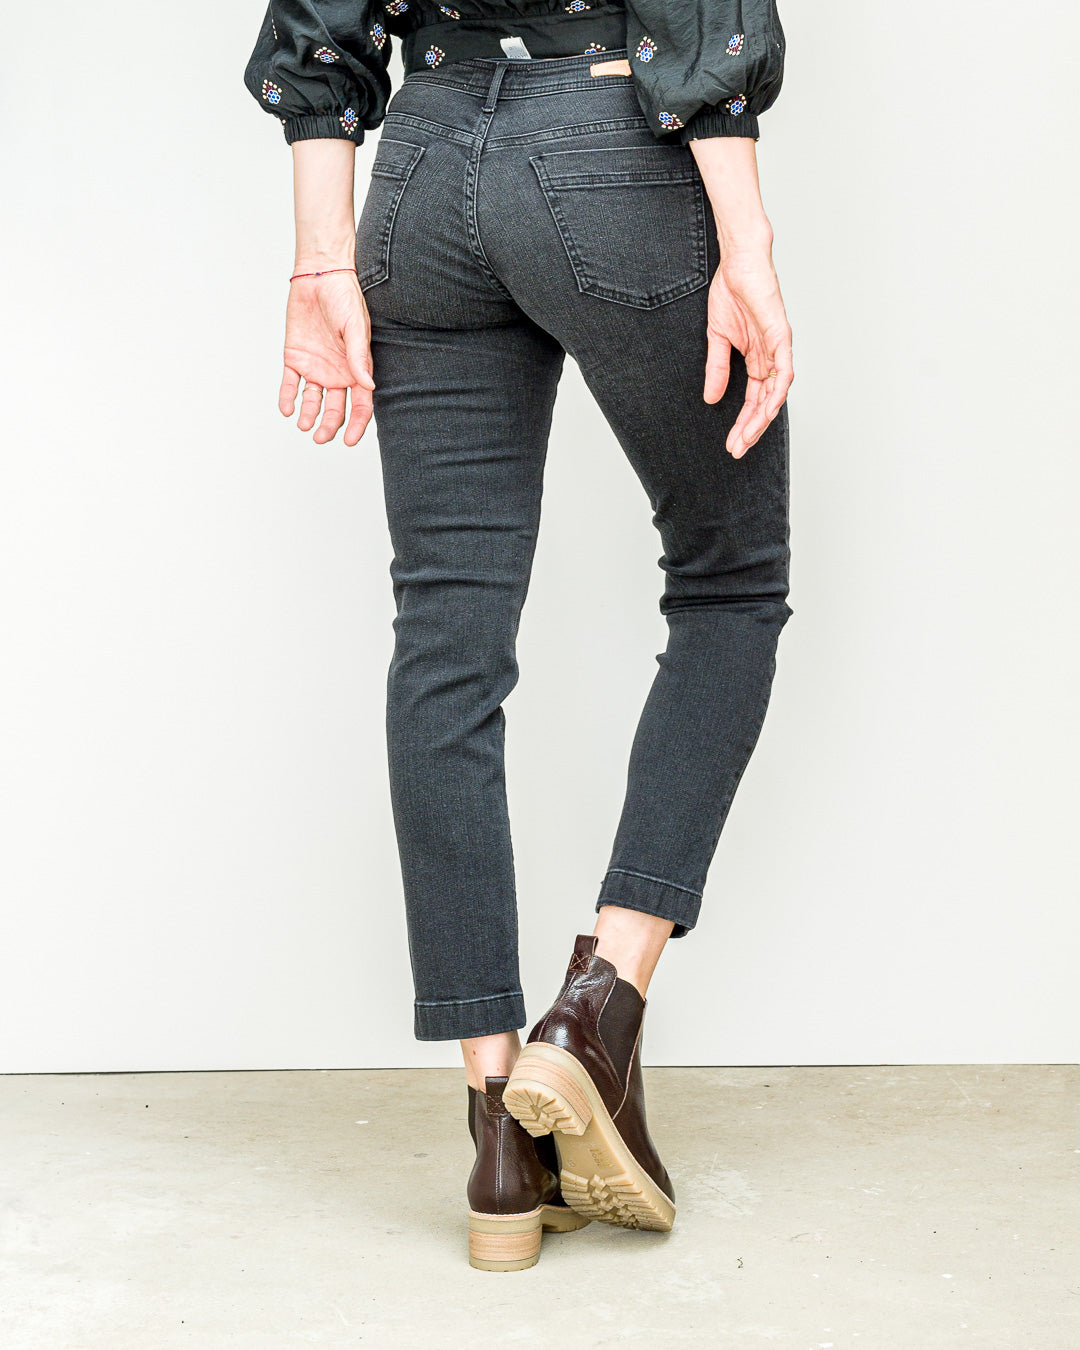 Sessun // Denim Jeans Stoneford Black Black